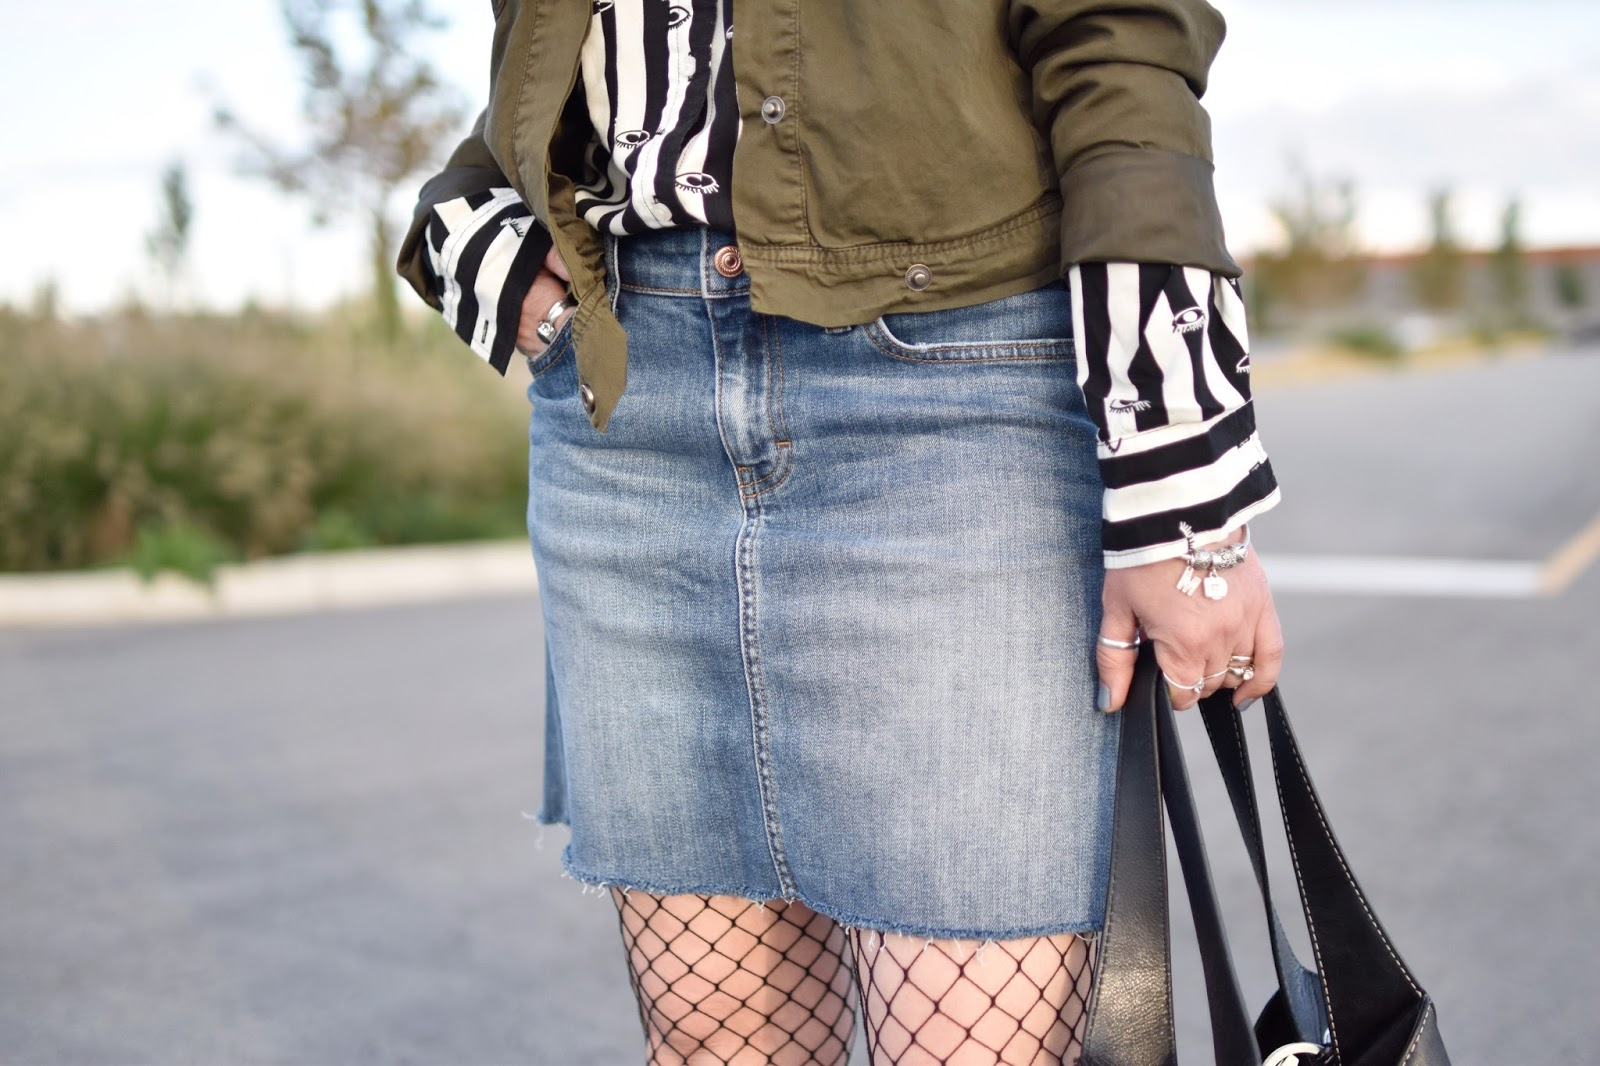 Monika Faulkner outfit inspiration - denim mini skirt, fishnet tights, black-and-white patterned shirt, olive cargo jacket